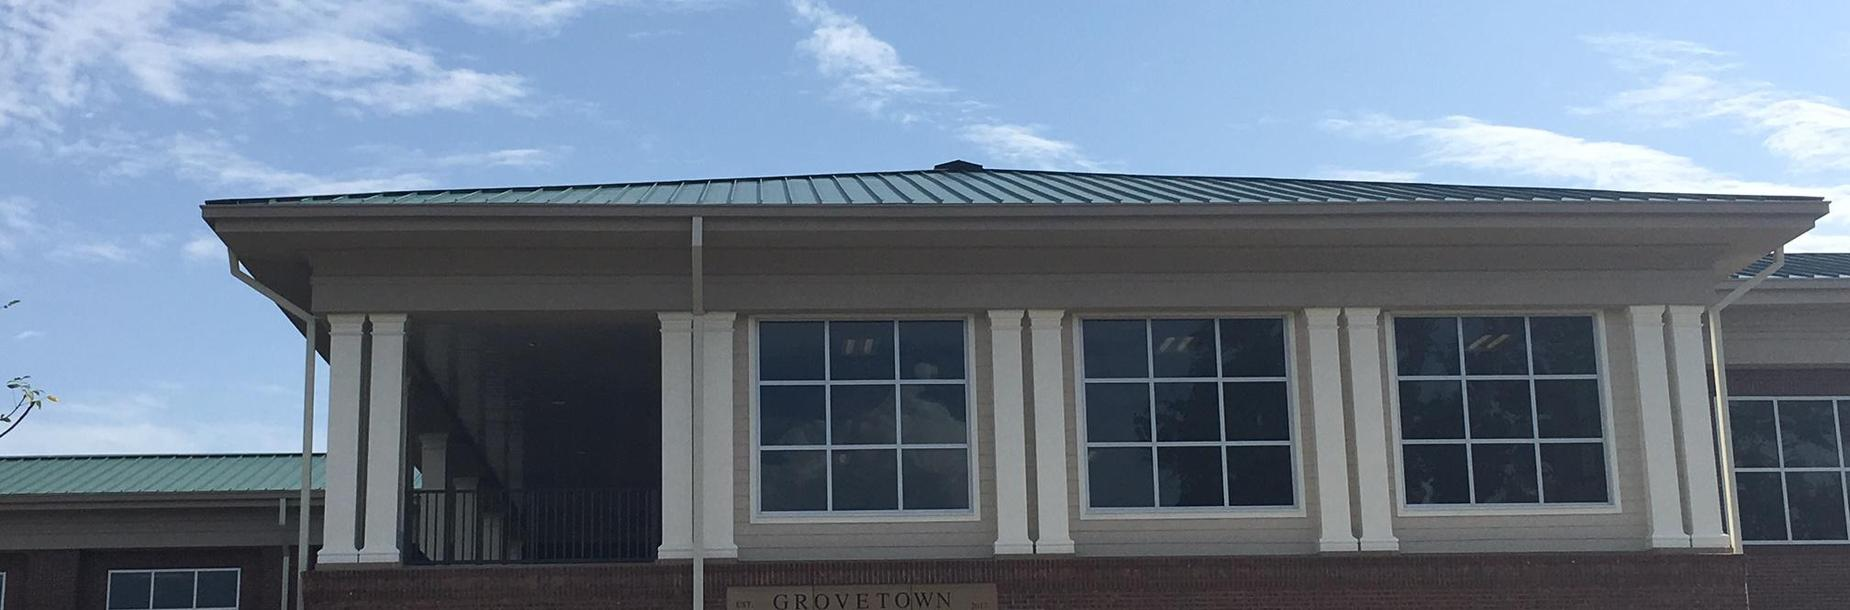 Exterior photo of Grovetown Elementary School